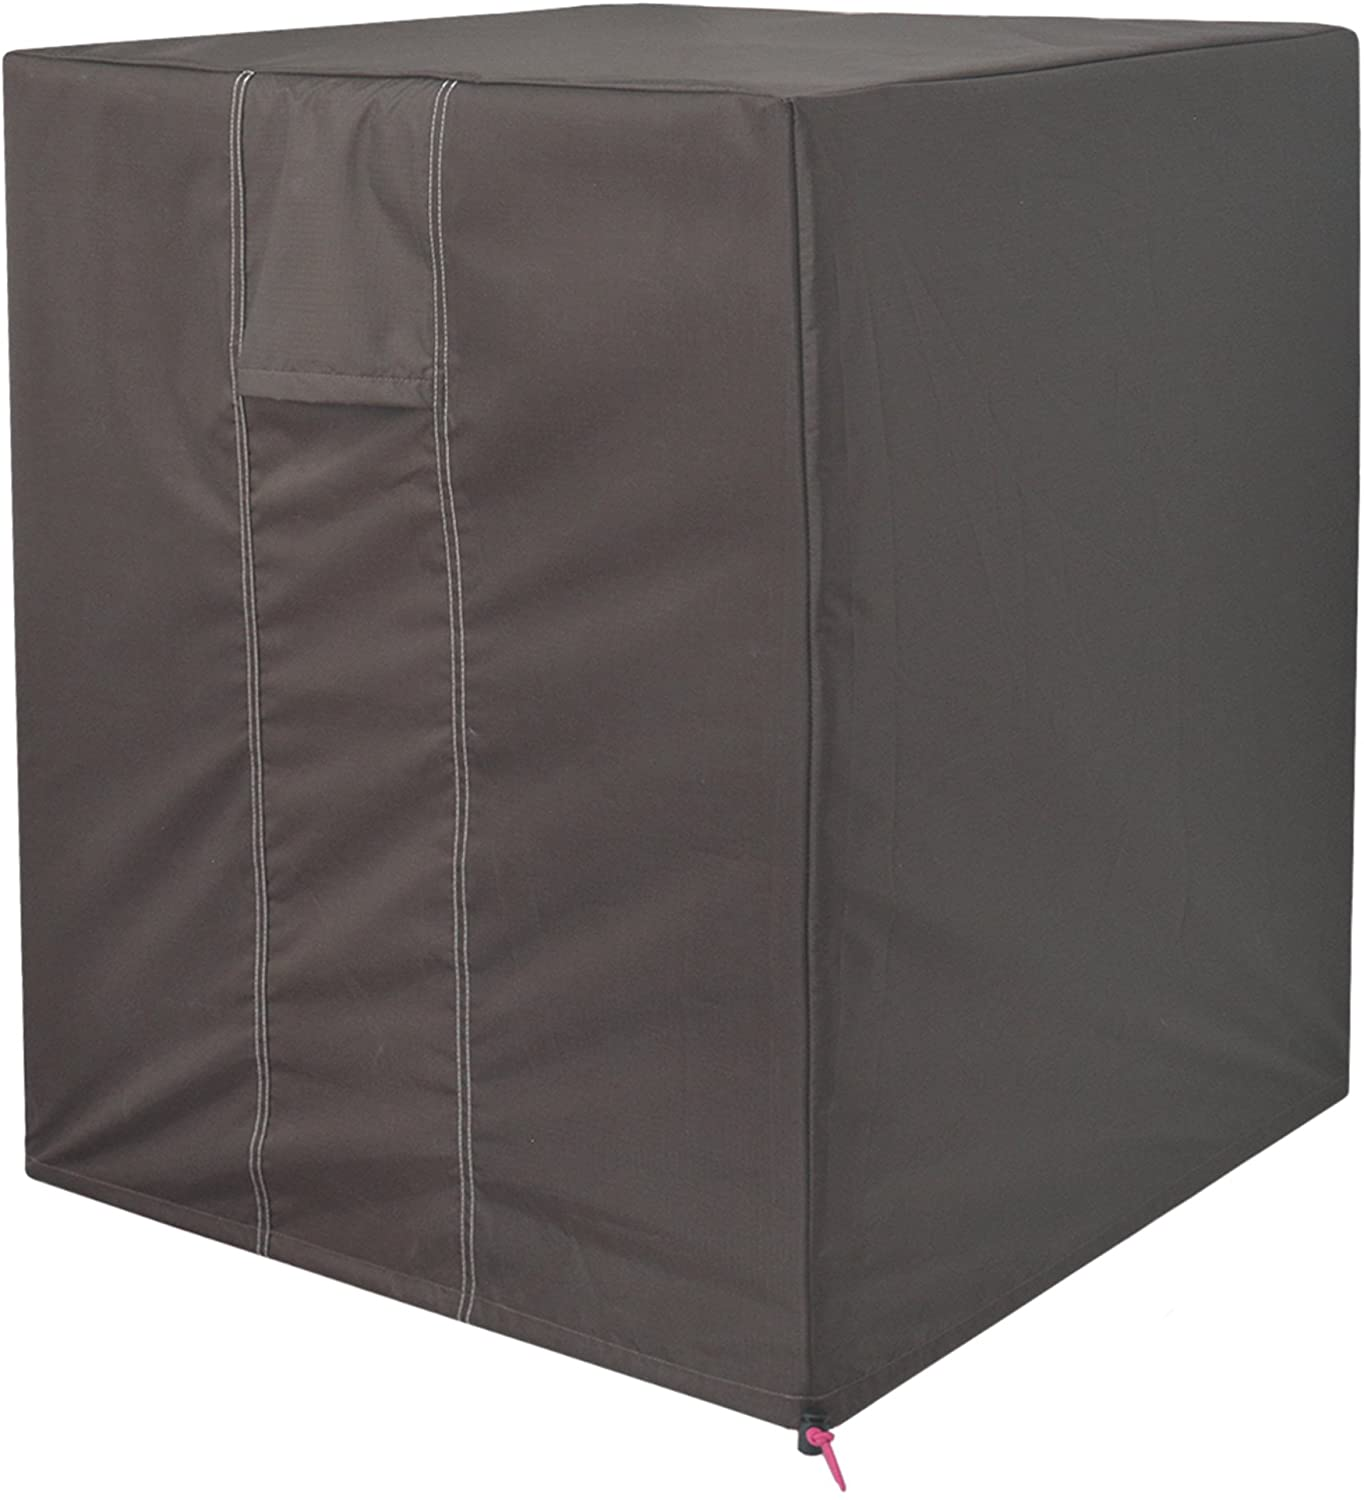 Jeacent Central Air Conditioner Covers for Outside Units AC Covers 36x36x39 inches